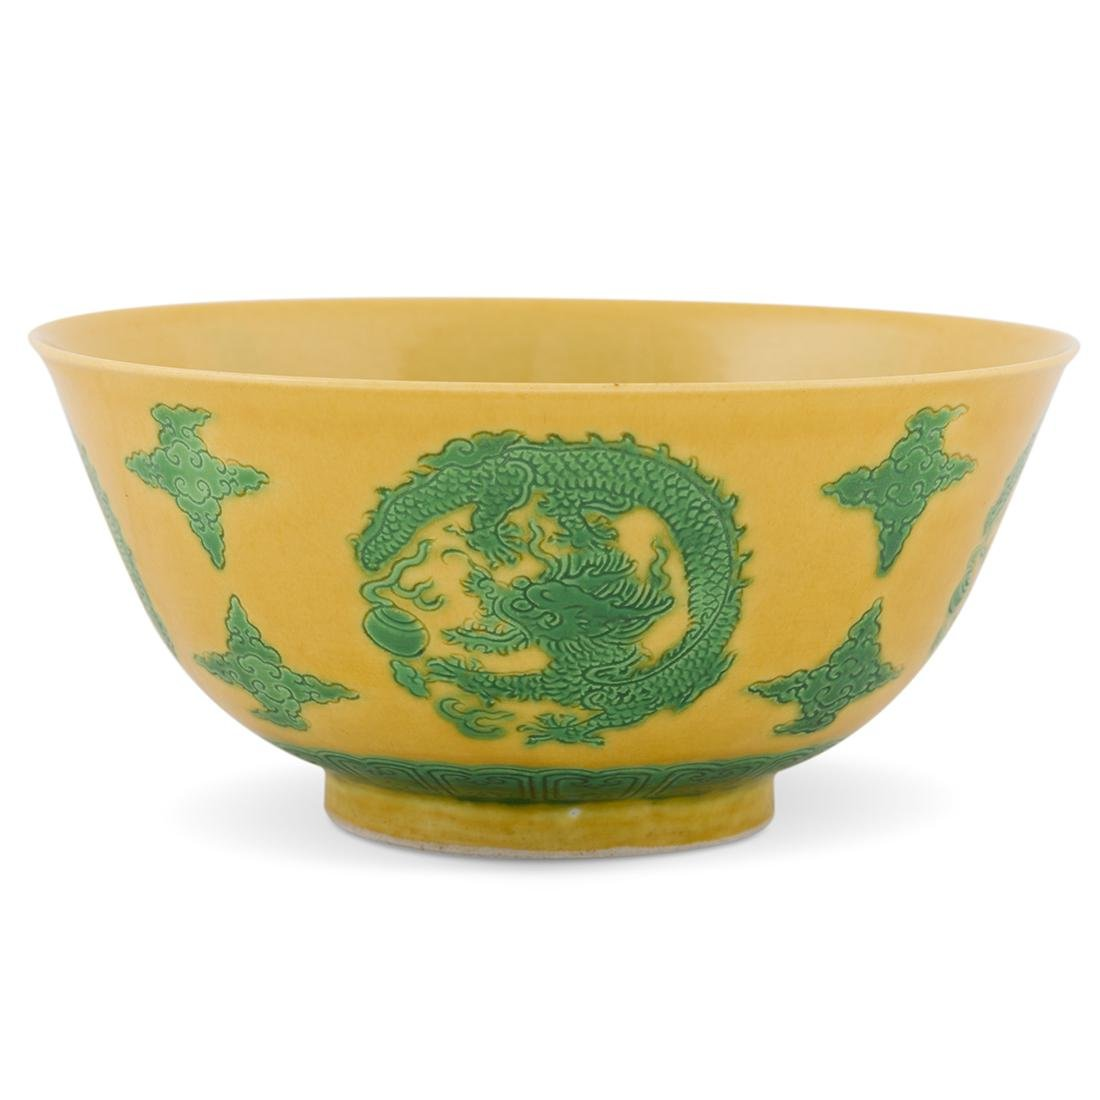 17/18TH C KANGXI SANCAI MEDALLION BOWL